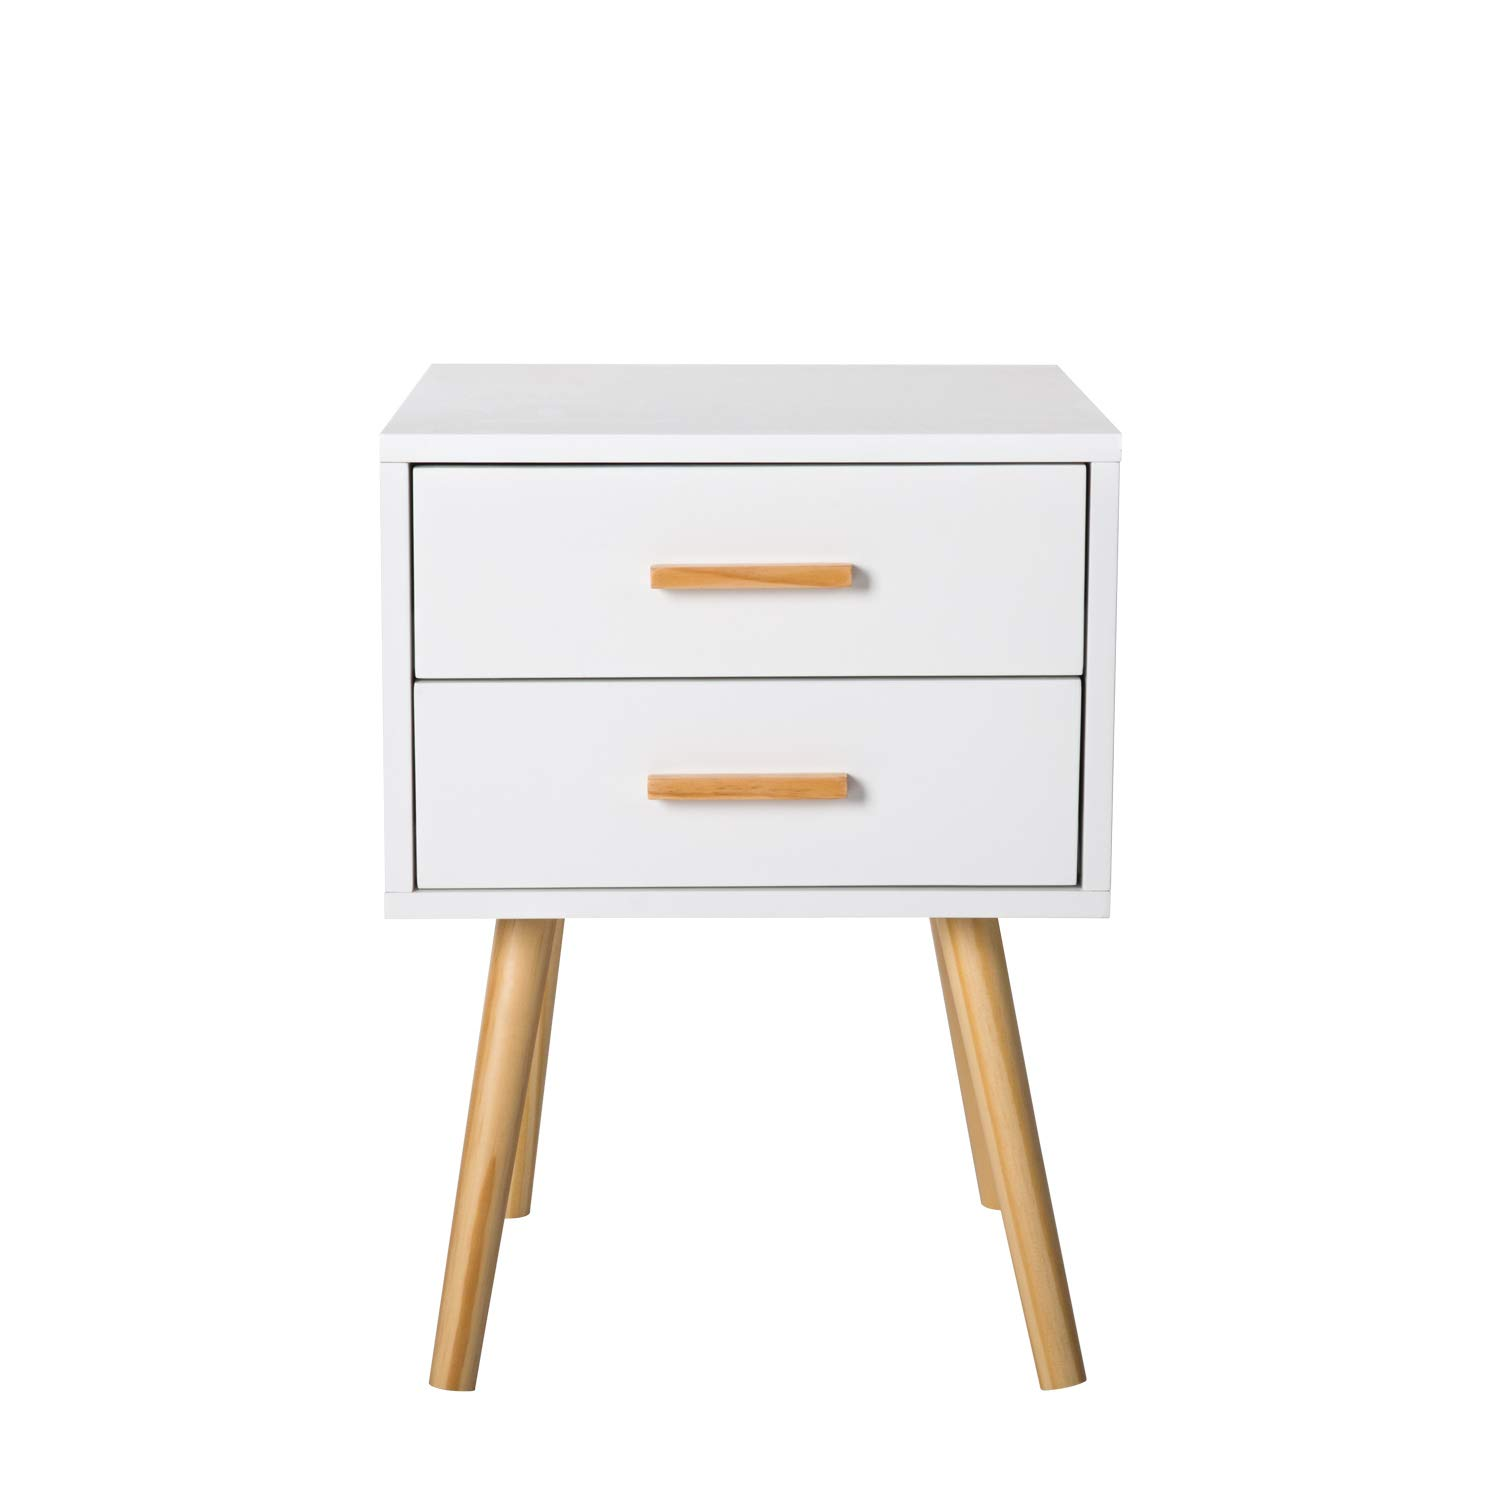 Peach Tree Side End Table Nightstand with 2 Drawers Storage Mid-Century Accent Wood Furniture, White/Wooden